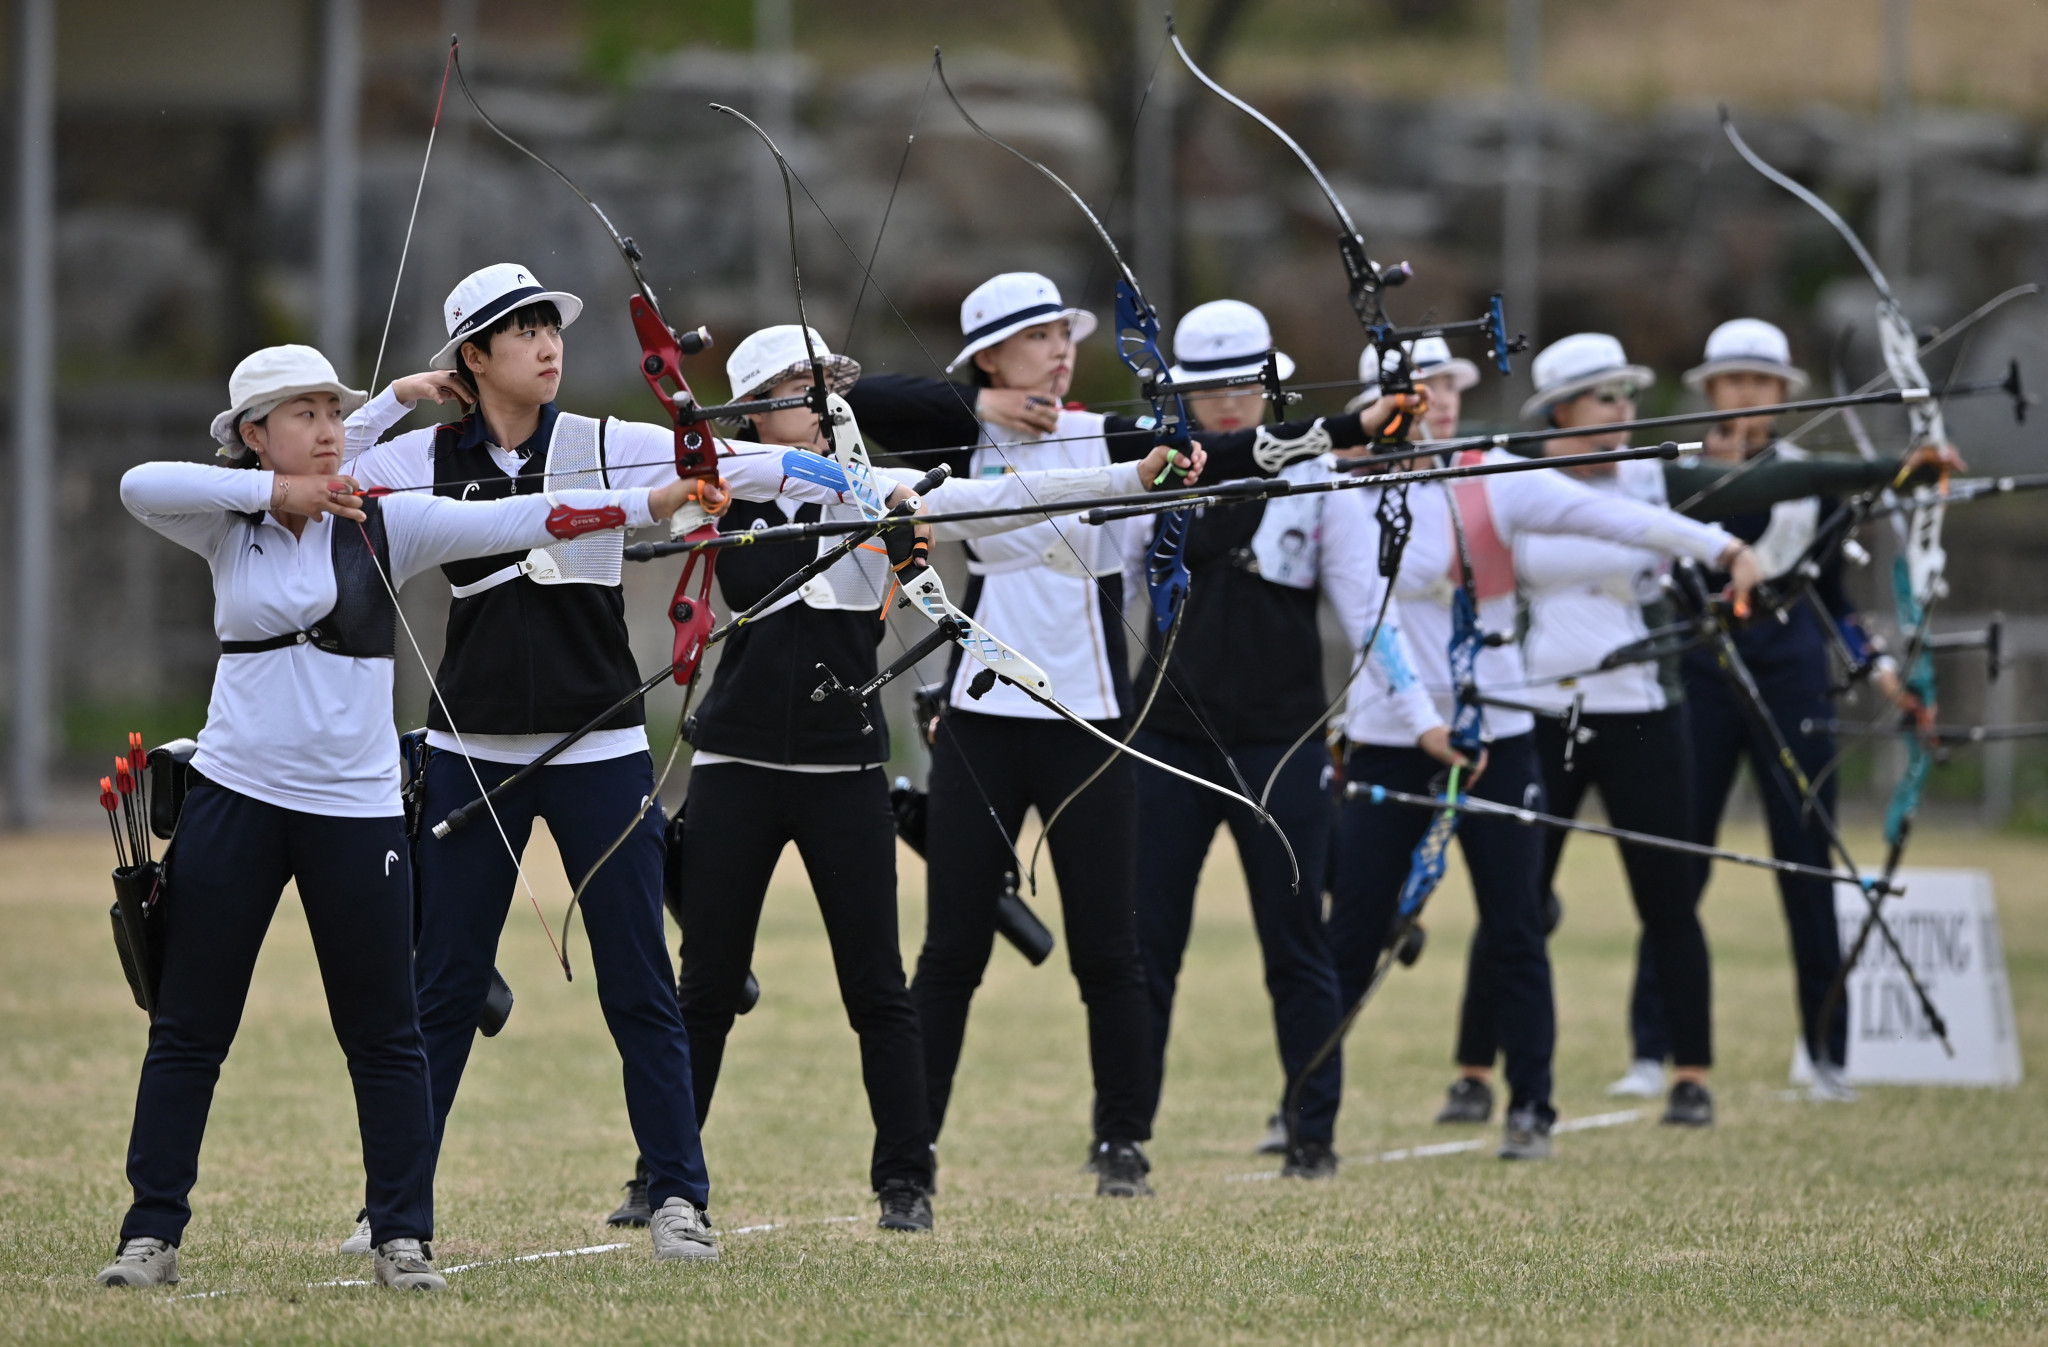 Trials were held to decide South Korea's archery team for the delayed Olympic Games ©Getty Images